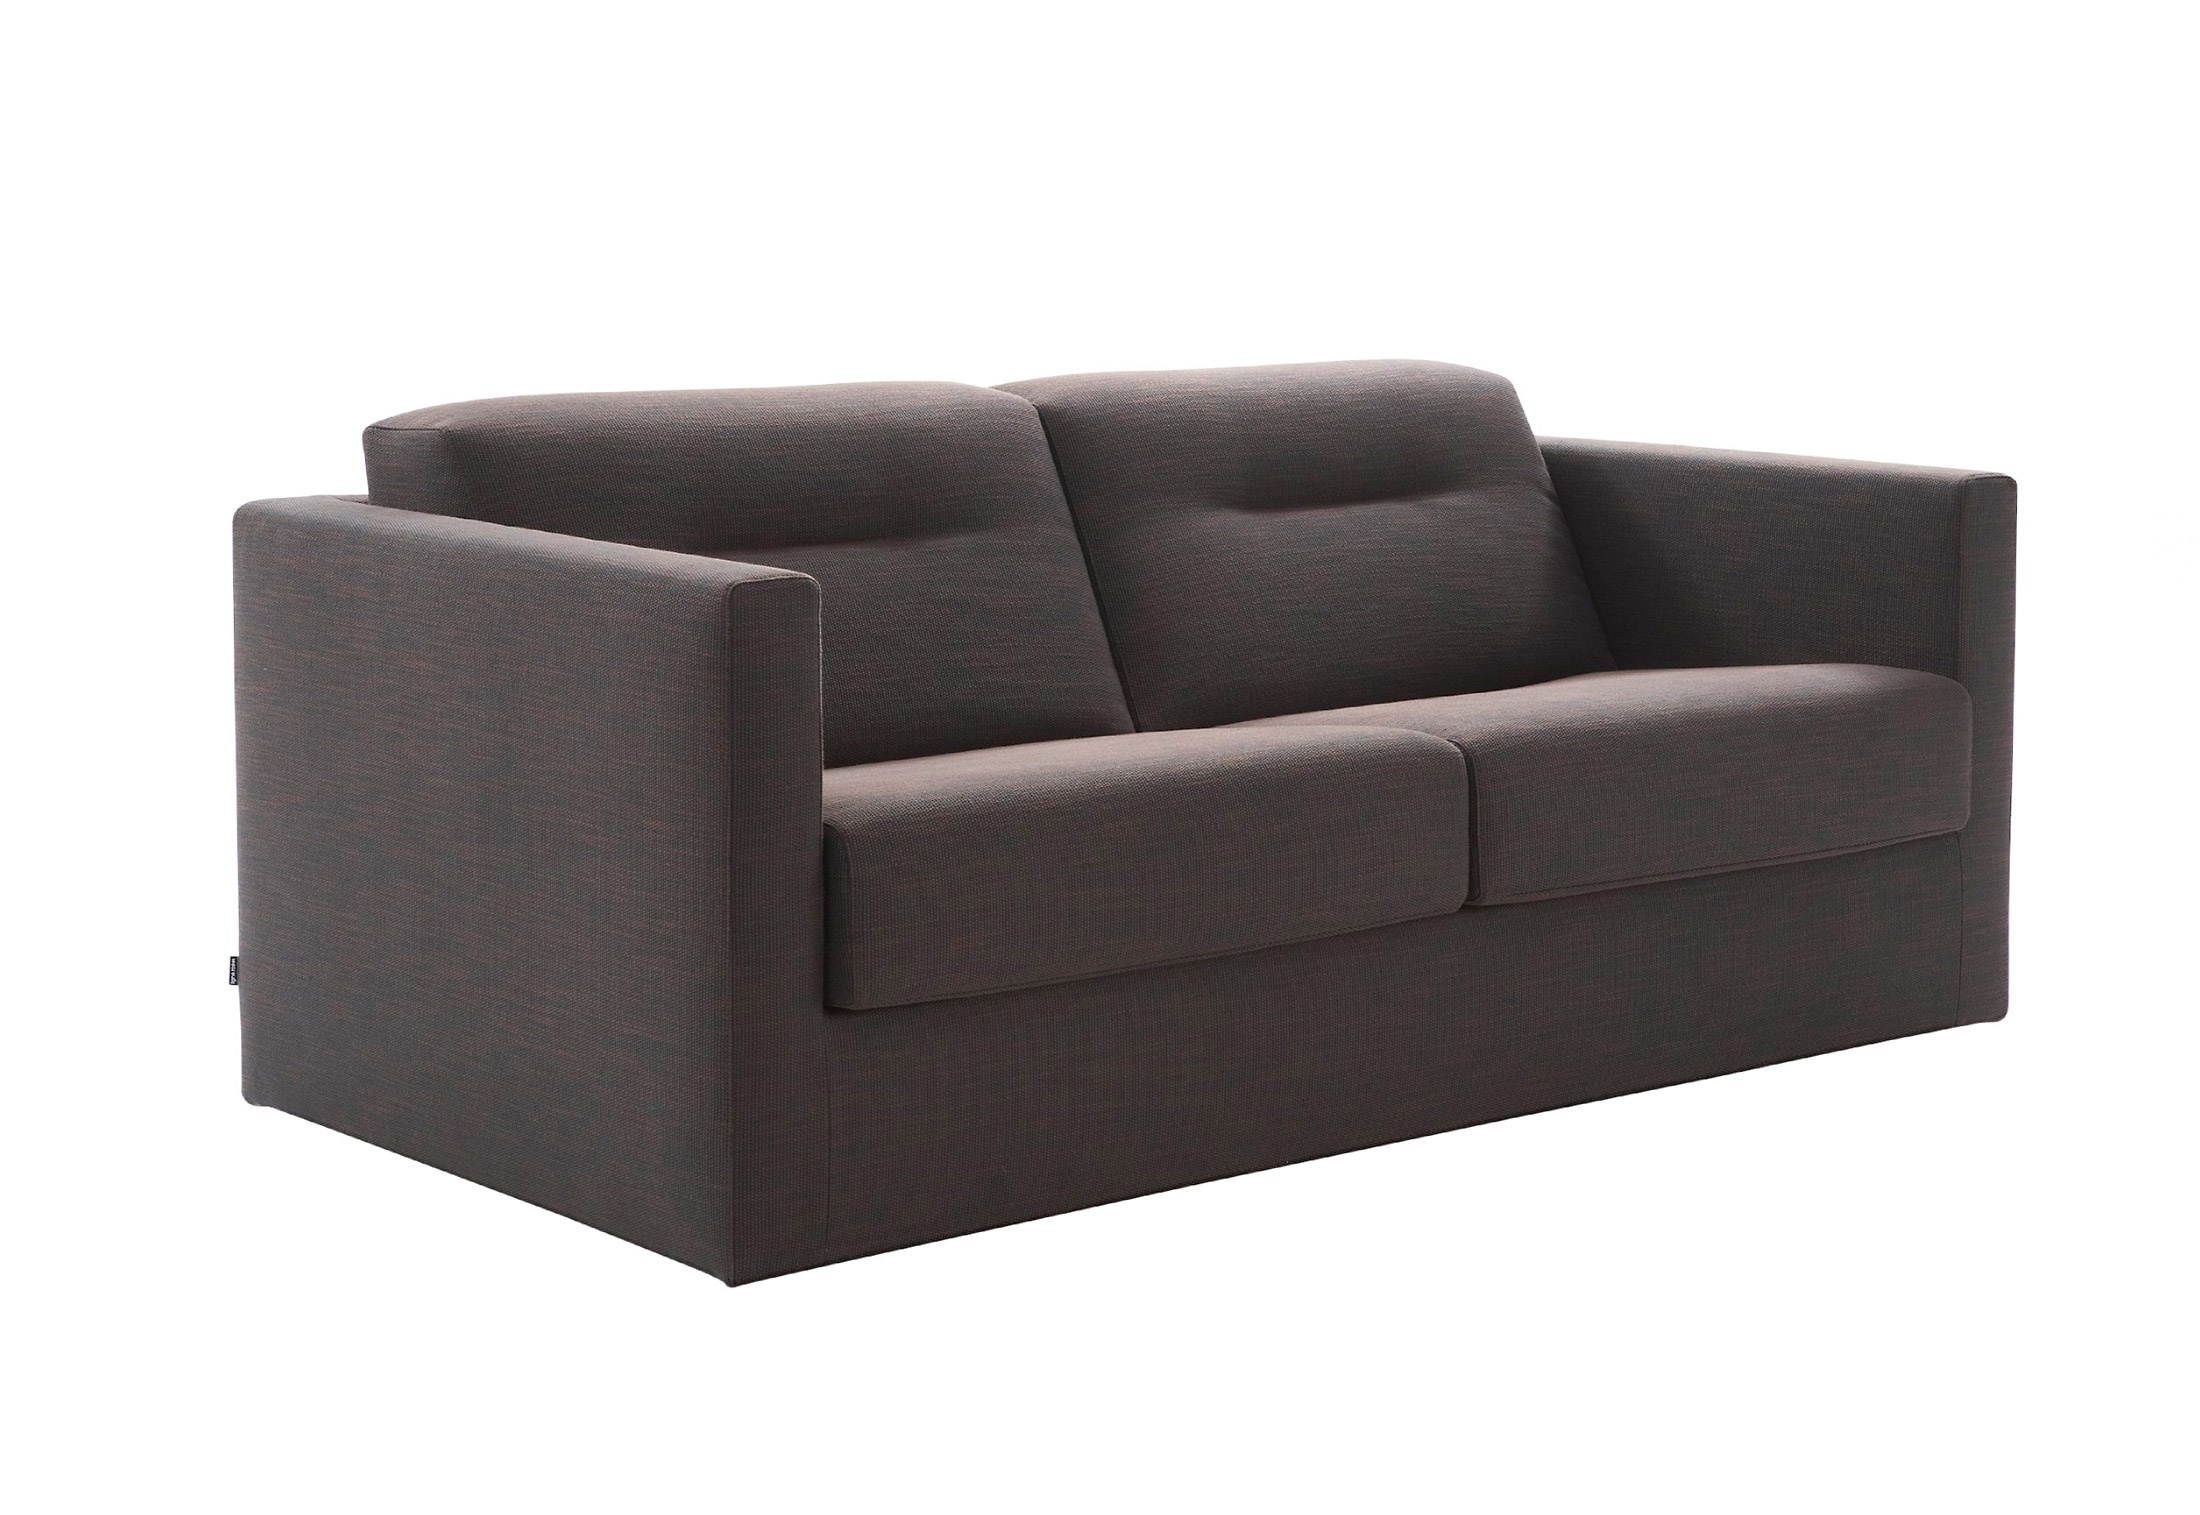 schlafsofas ligne roset wandfarbe schlafzimmer rot youtube neu gestalten estella jersey. Black Bedroom Furniture Sets. Home Design Ideas